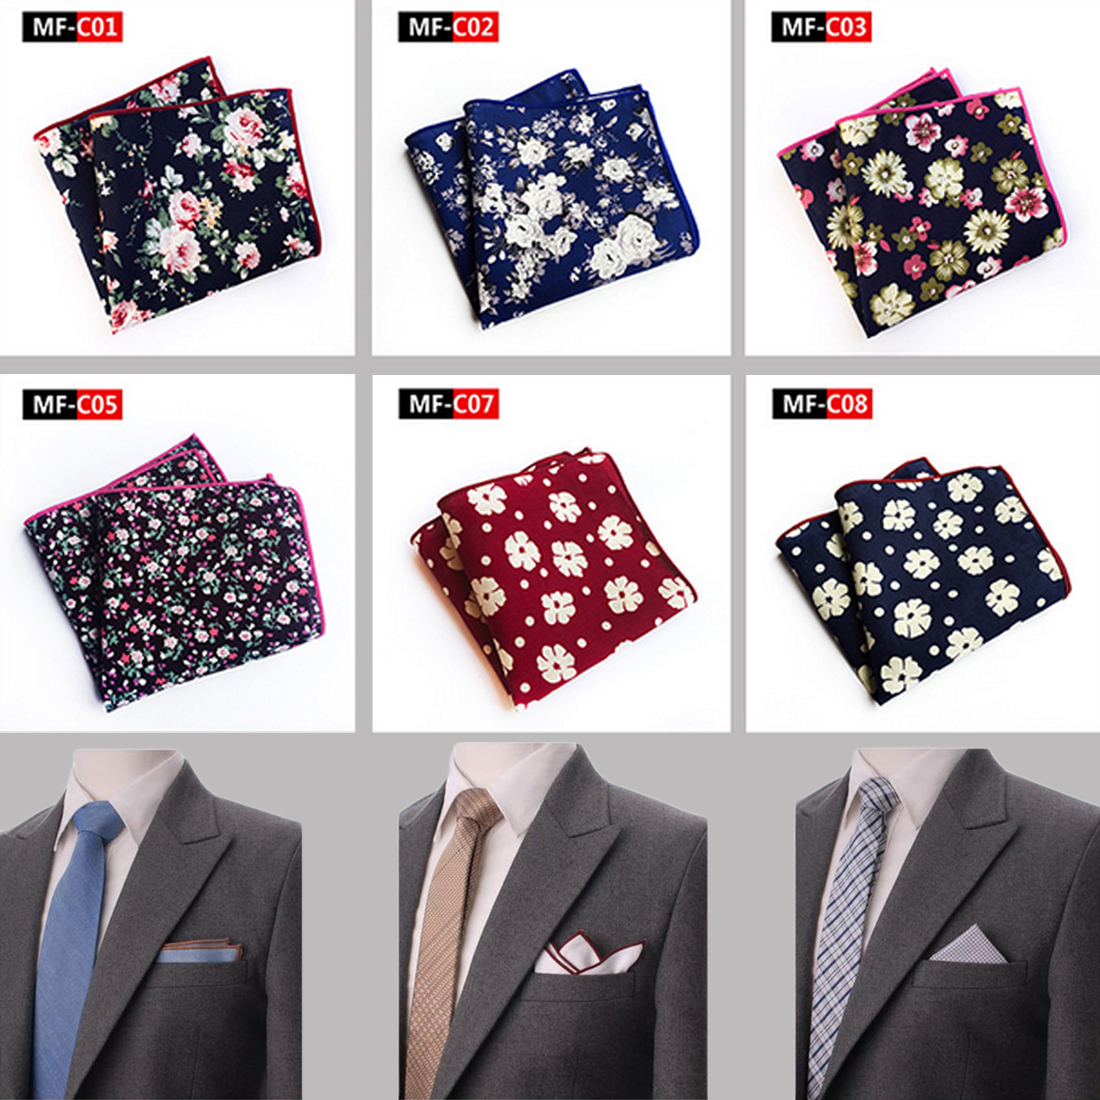 Comfortable Men's Cotton Pocket Square Western Style Floral Handkerchief For Suit Pocket Wedding Square Paisley 25x25cm